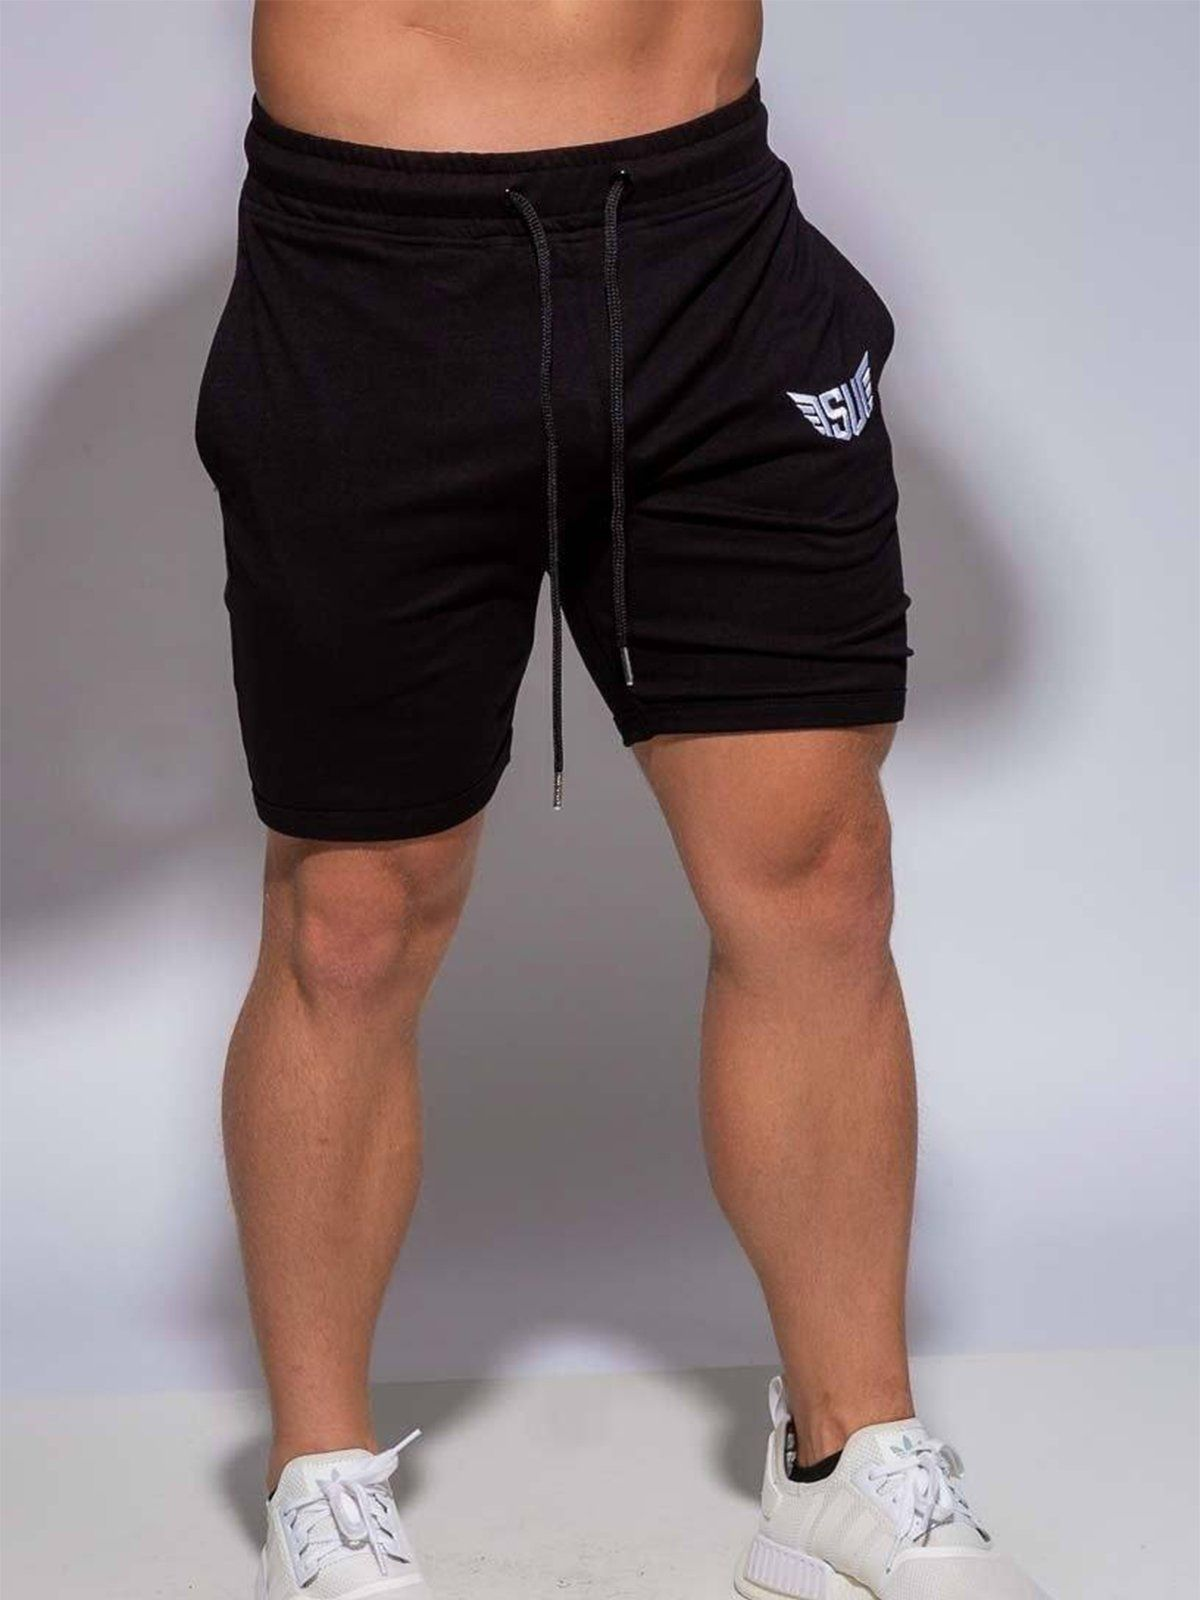 Size Up Workout Shorts Black Fitted Athletic Pants For Men Size Up Apparel Men Mensfashion Menswear M Sport Outfit Men Gym Wear For Women Mens Outfits [ 1600 x 1200 Pixel ]